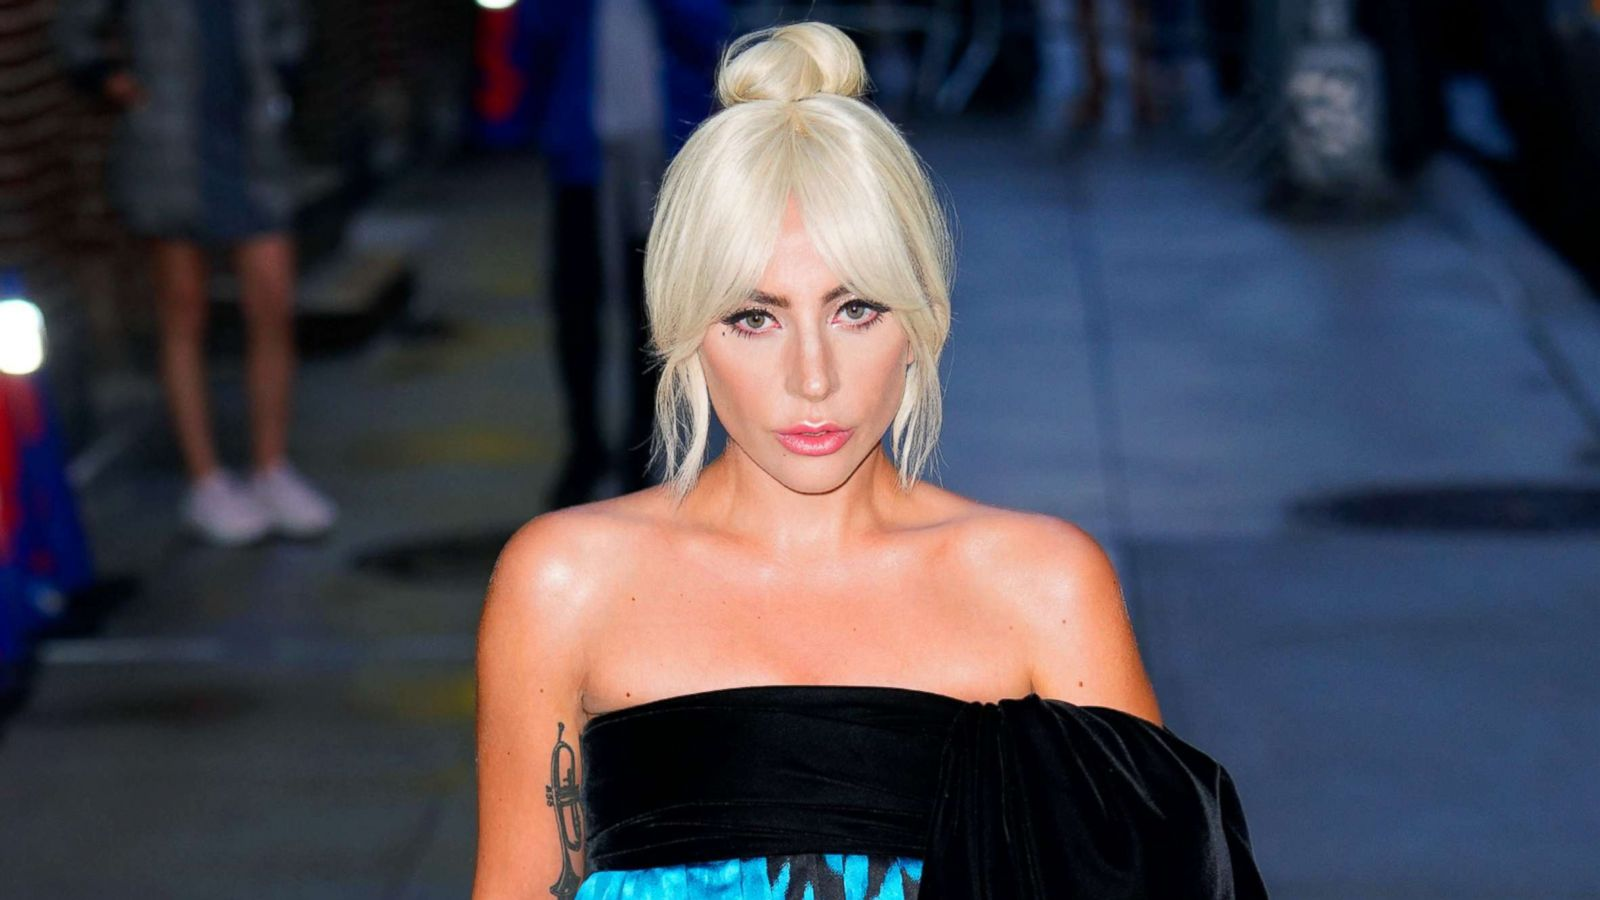 Lady Gaga Flashes Her Post Op Vagina nude (95 image)